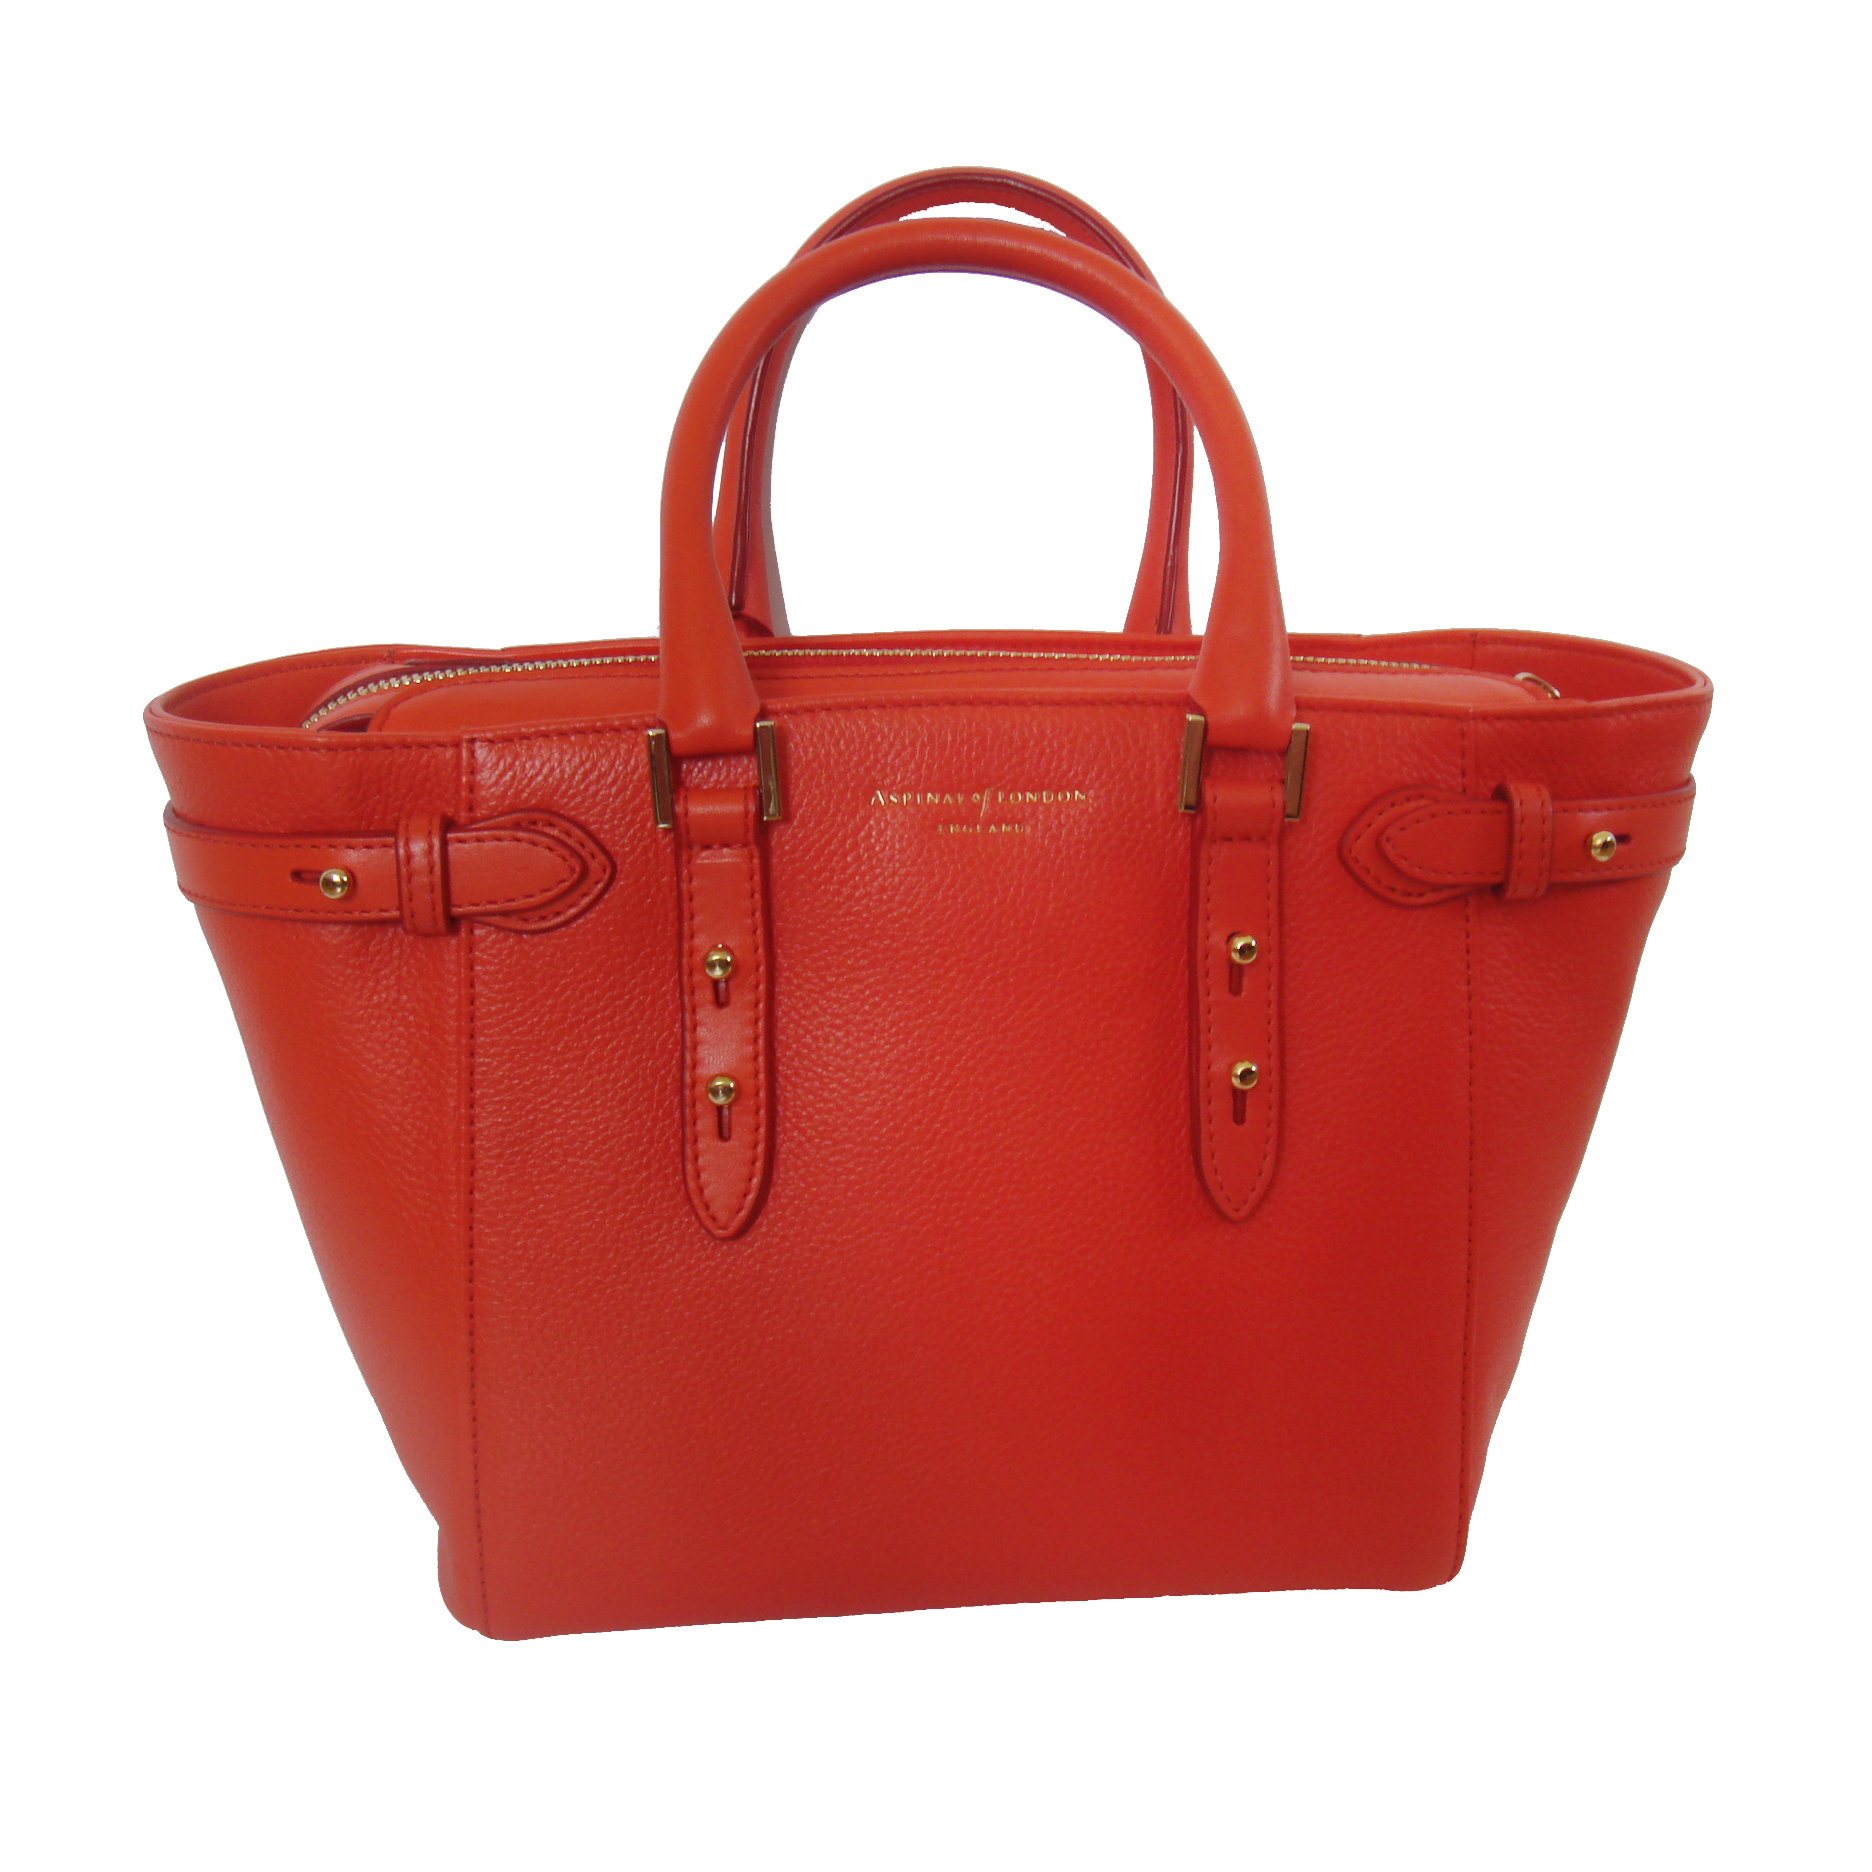 df7144e262 Aspinal London Marylebone Small Tote In Poppy